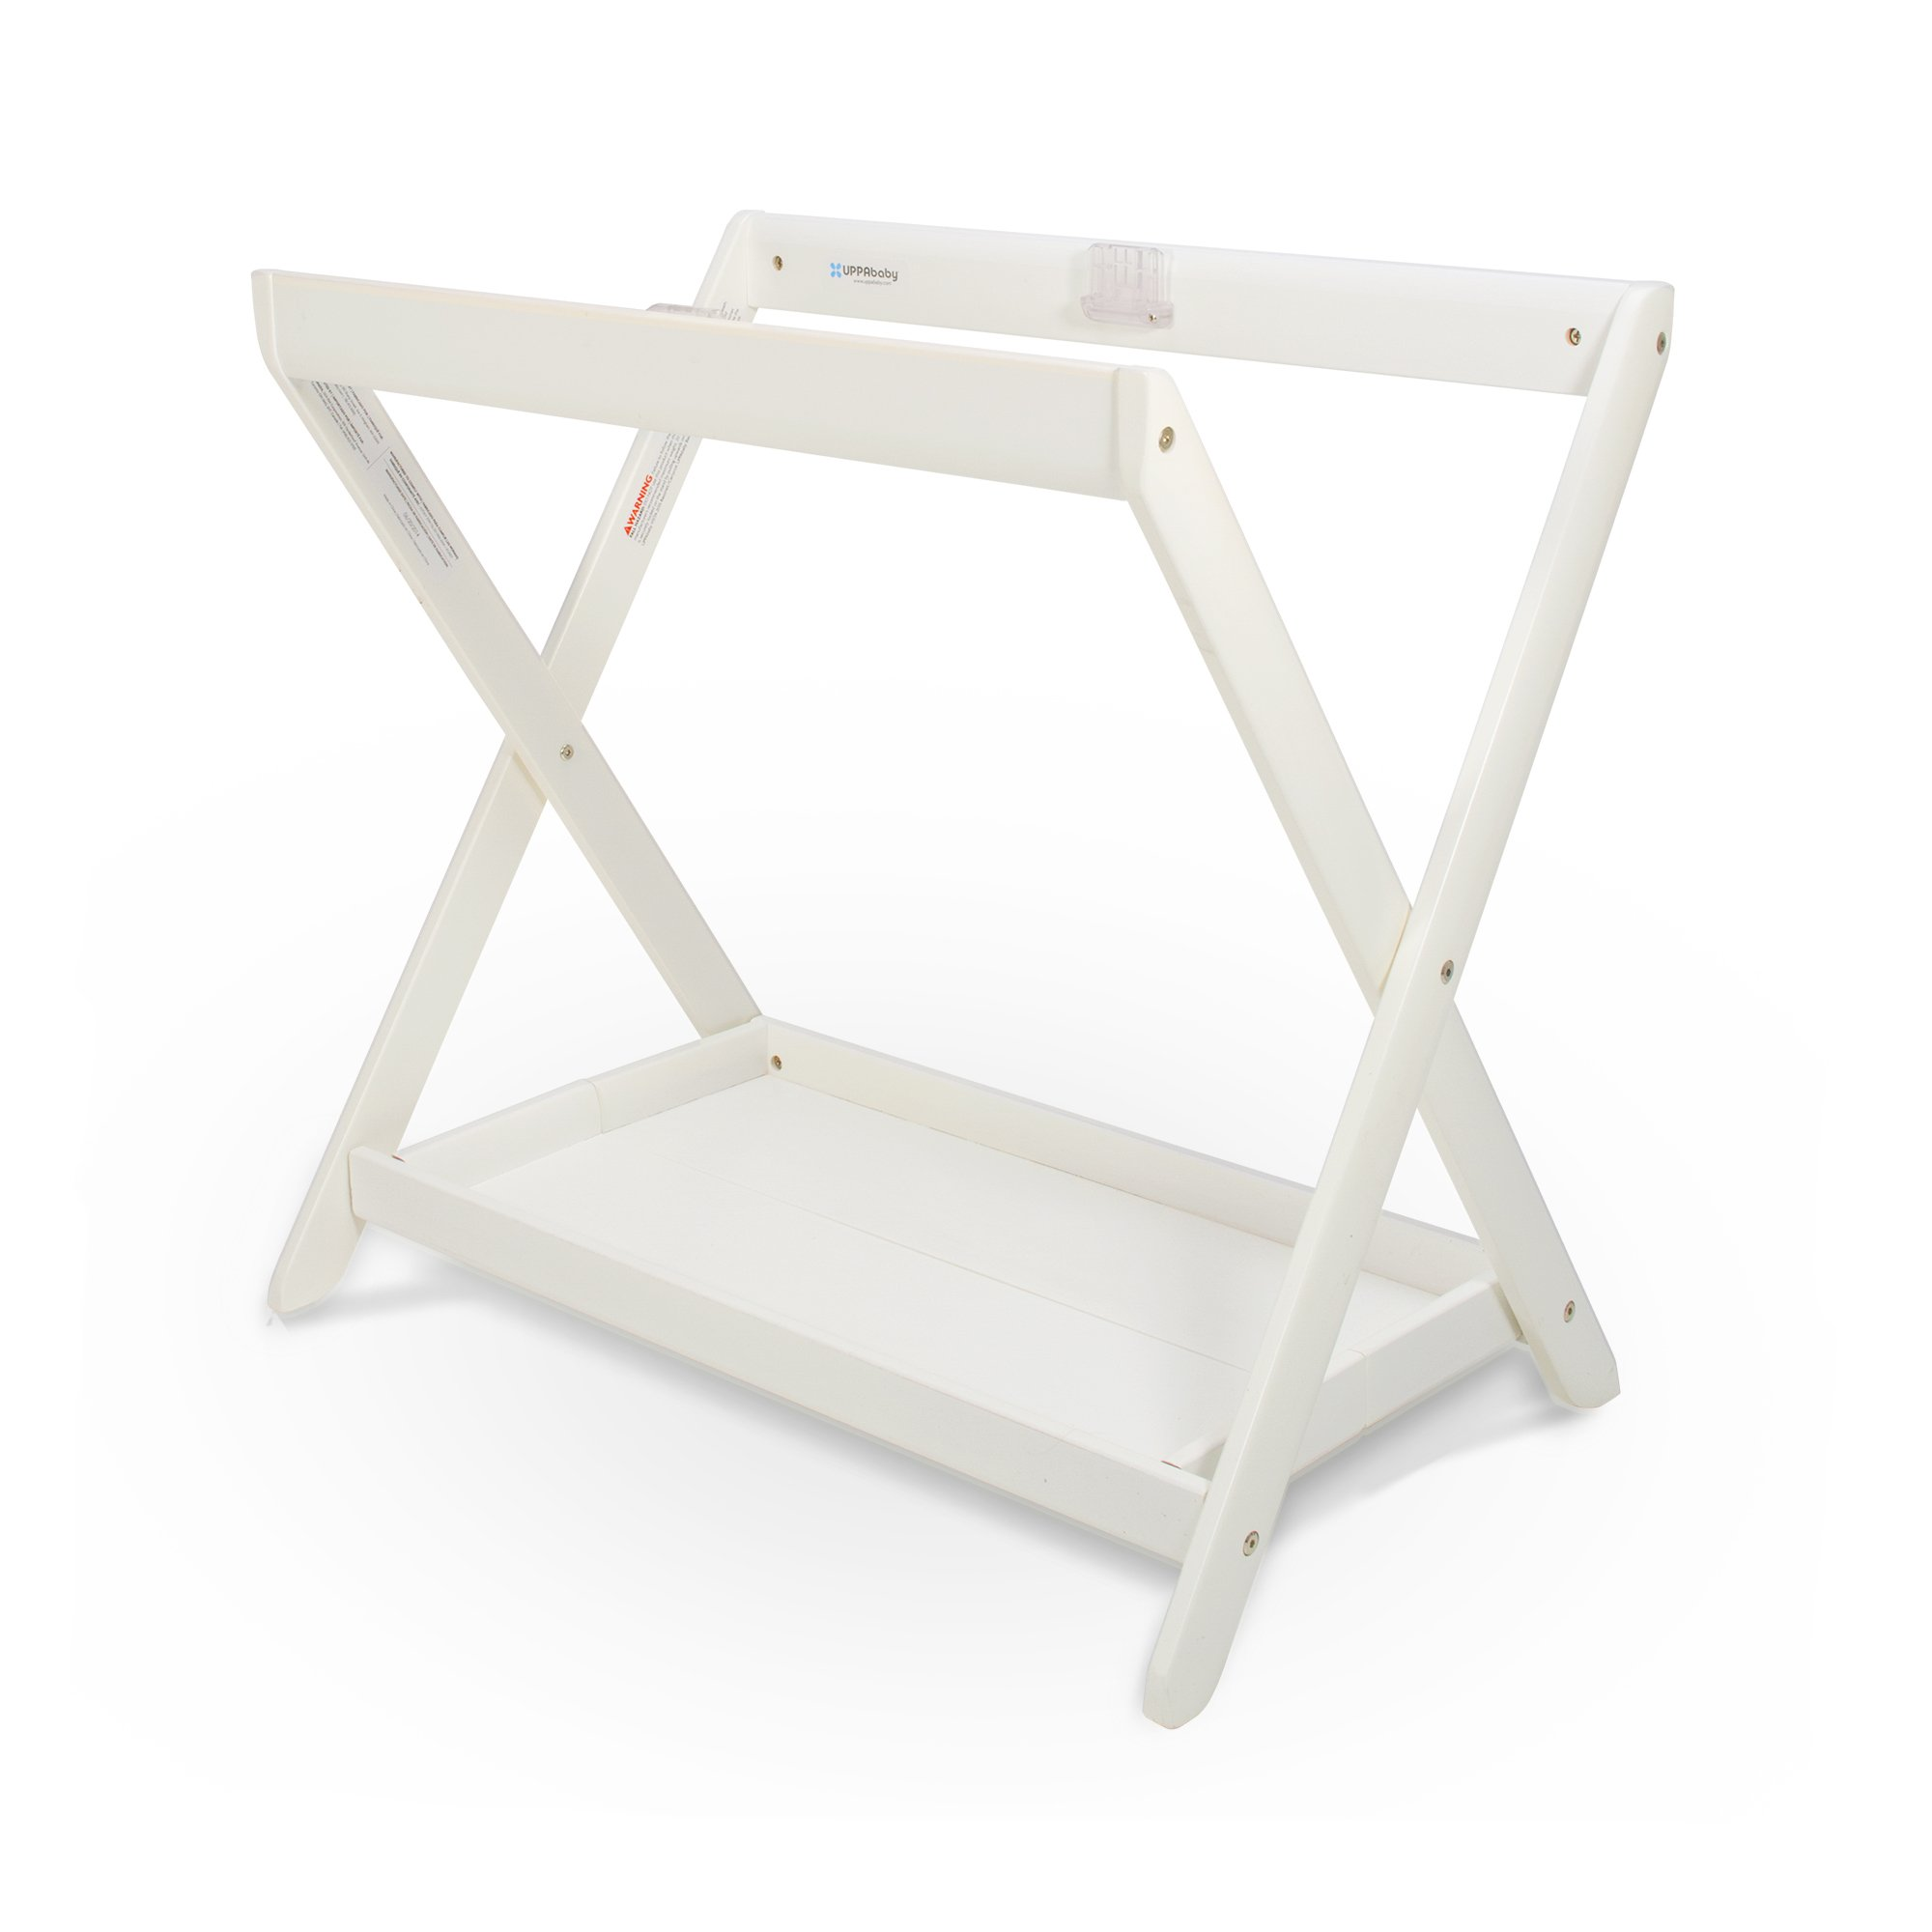 UPPAbaby Bassinet Stand - White